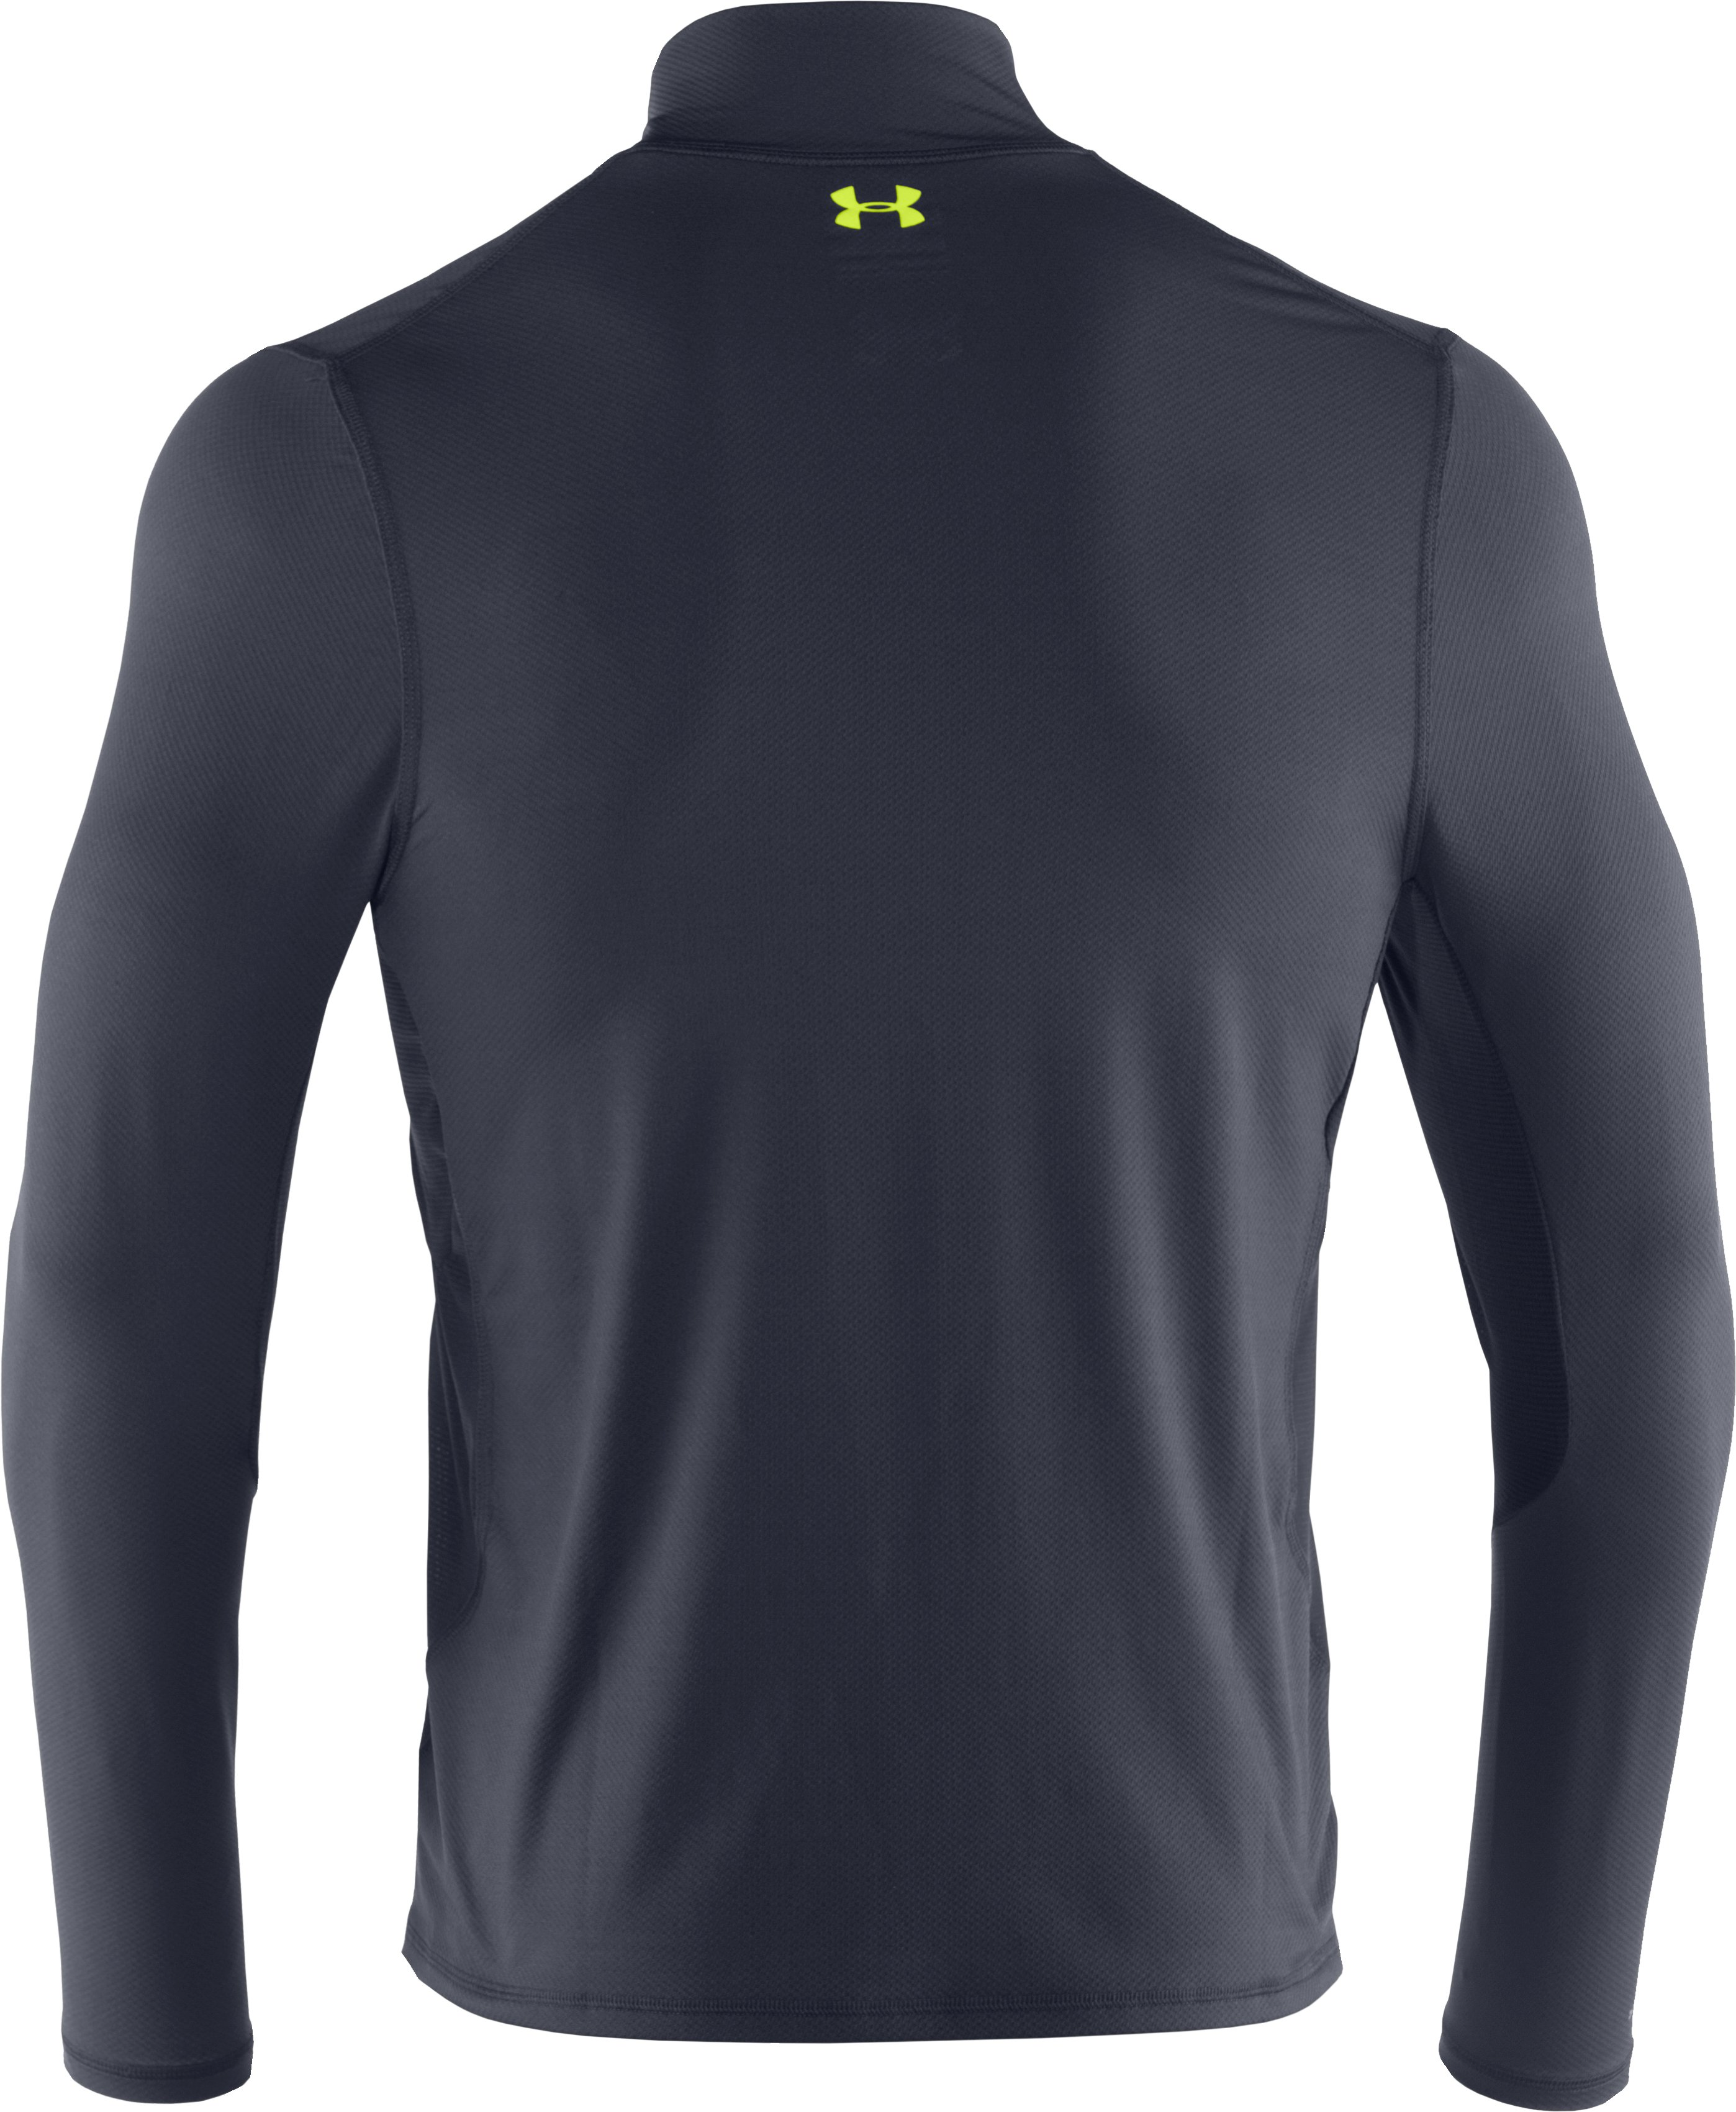 Men's coldblack® Abyss Knit Long Sleeve, DEEPWATER